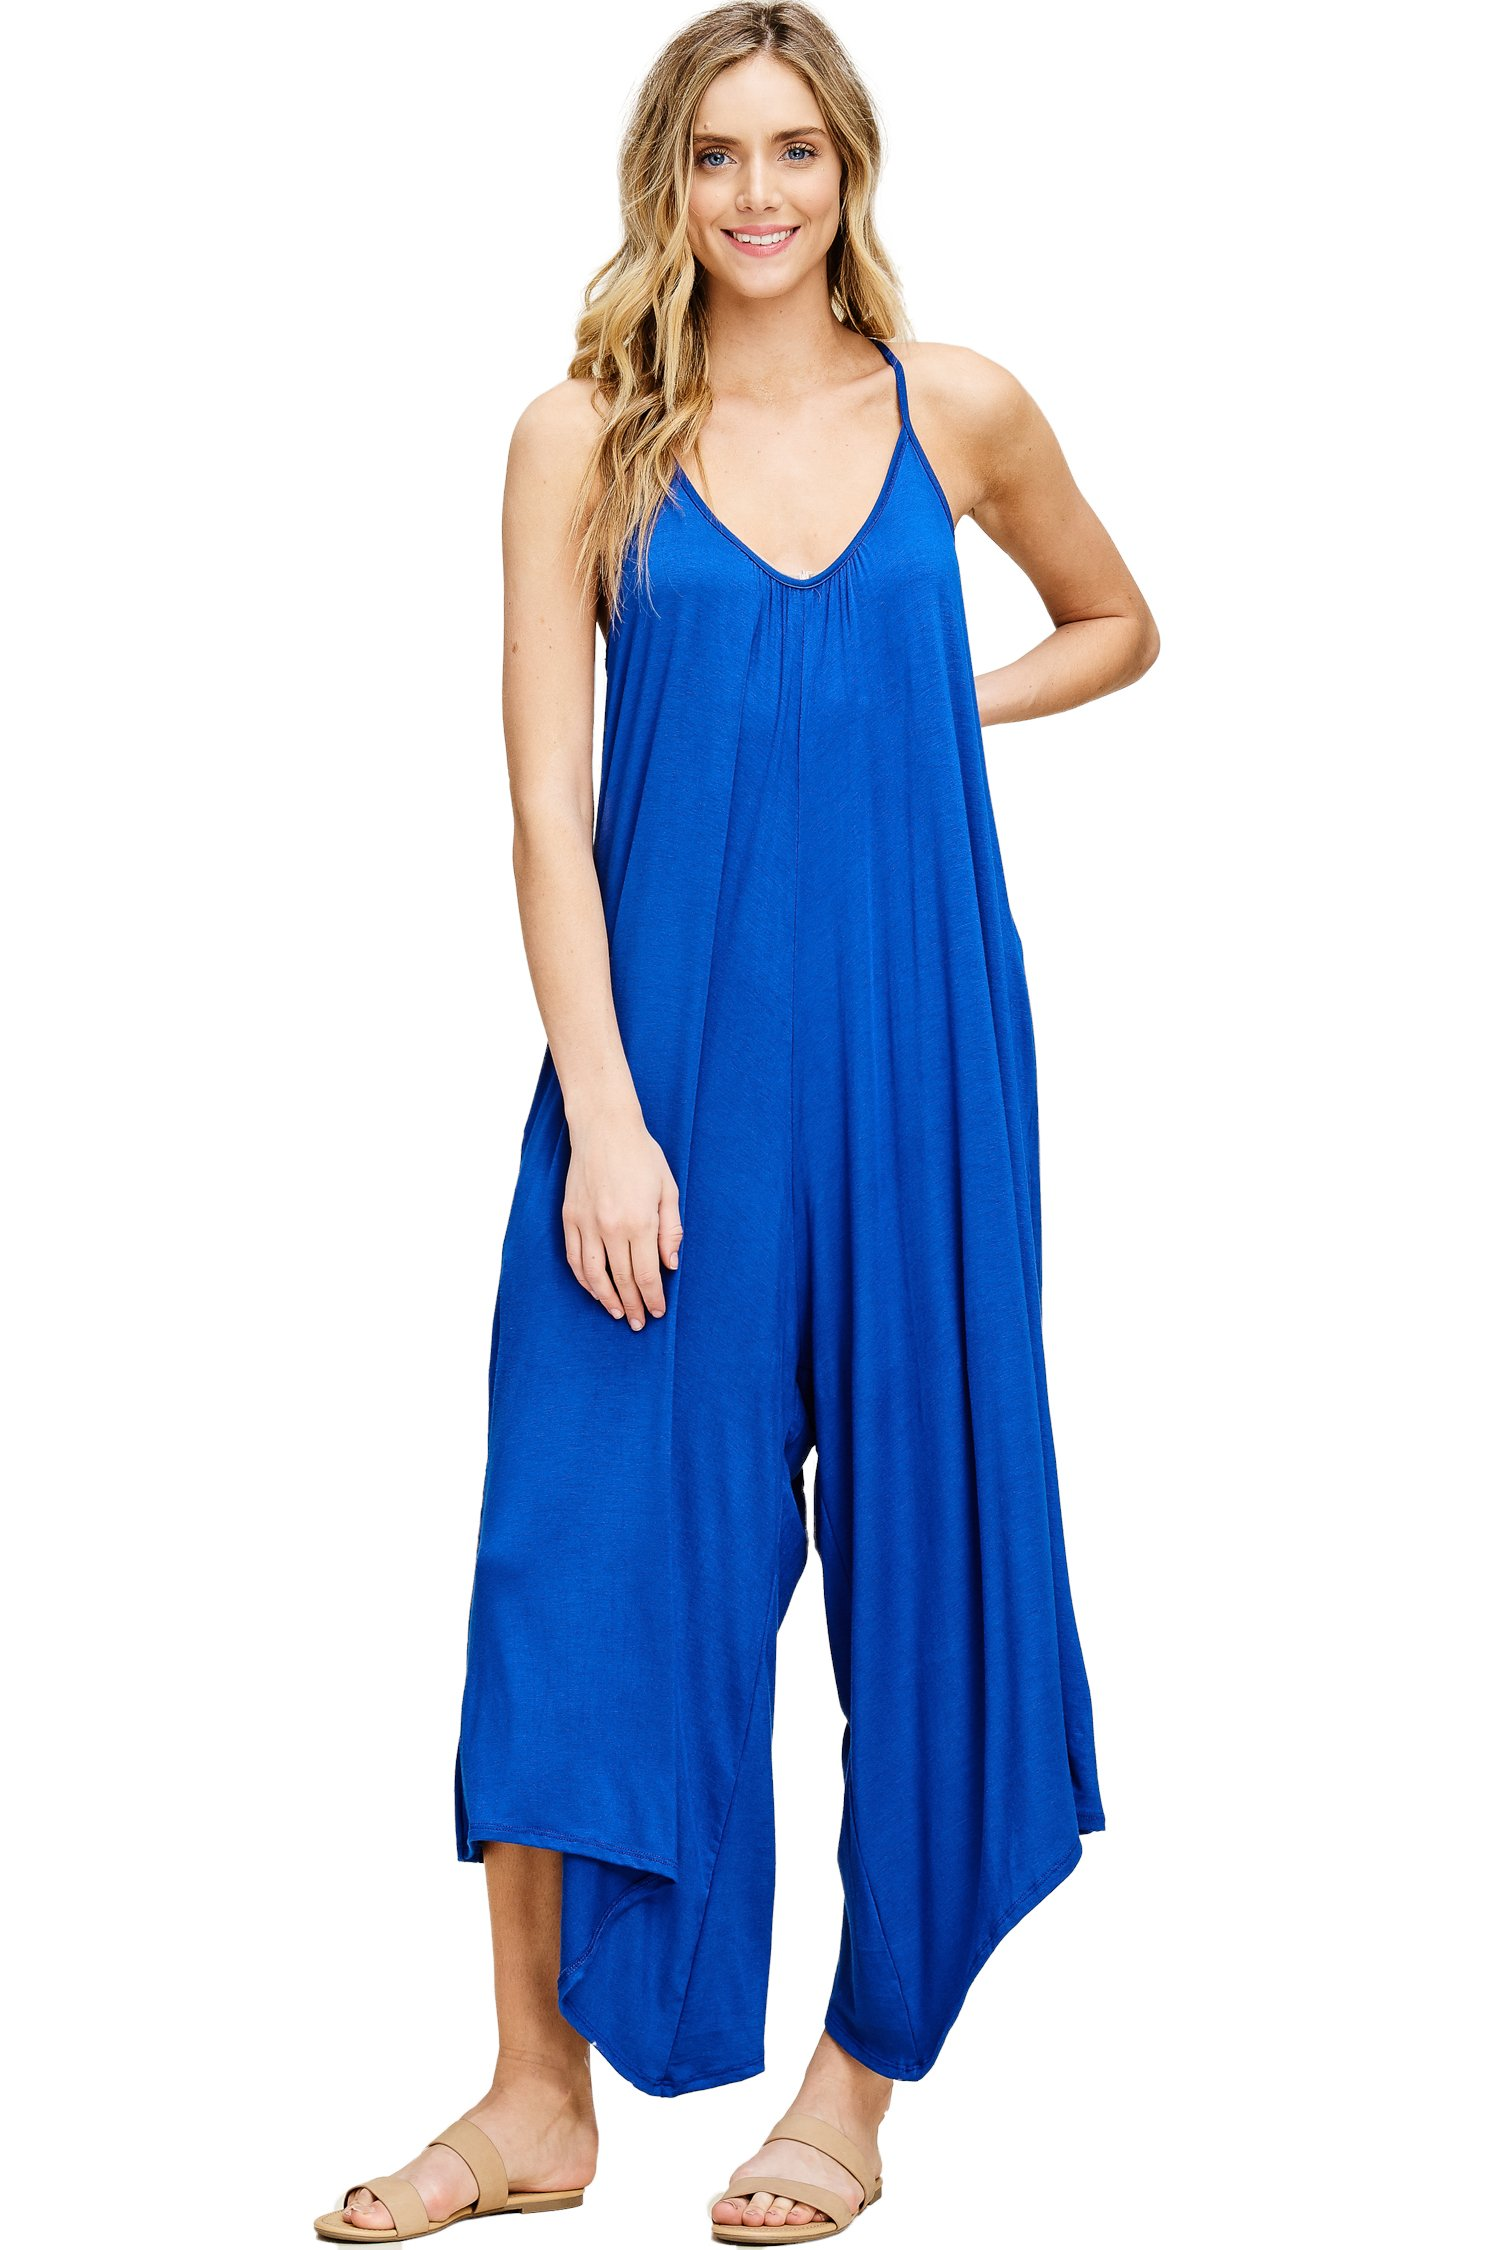 Annabelle Women's Asymmetrical V Neck Loose Fit Side Pocket Comfy Overall Jumpsuit Rompers Small Royal Blue J8030